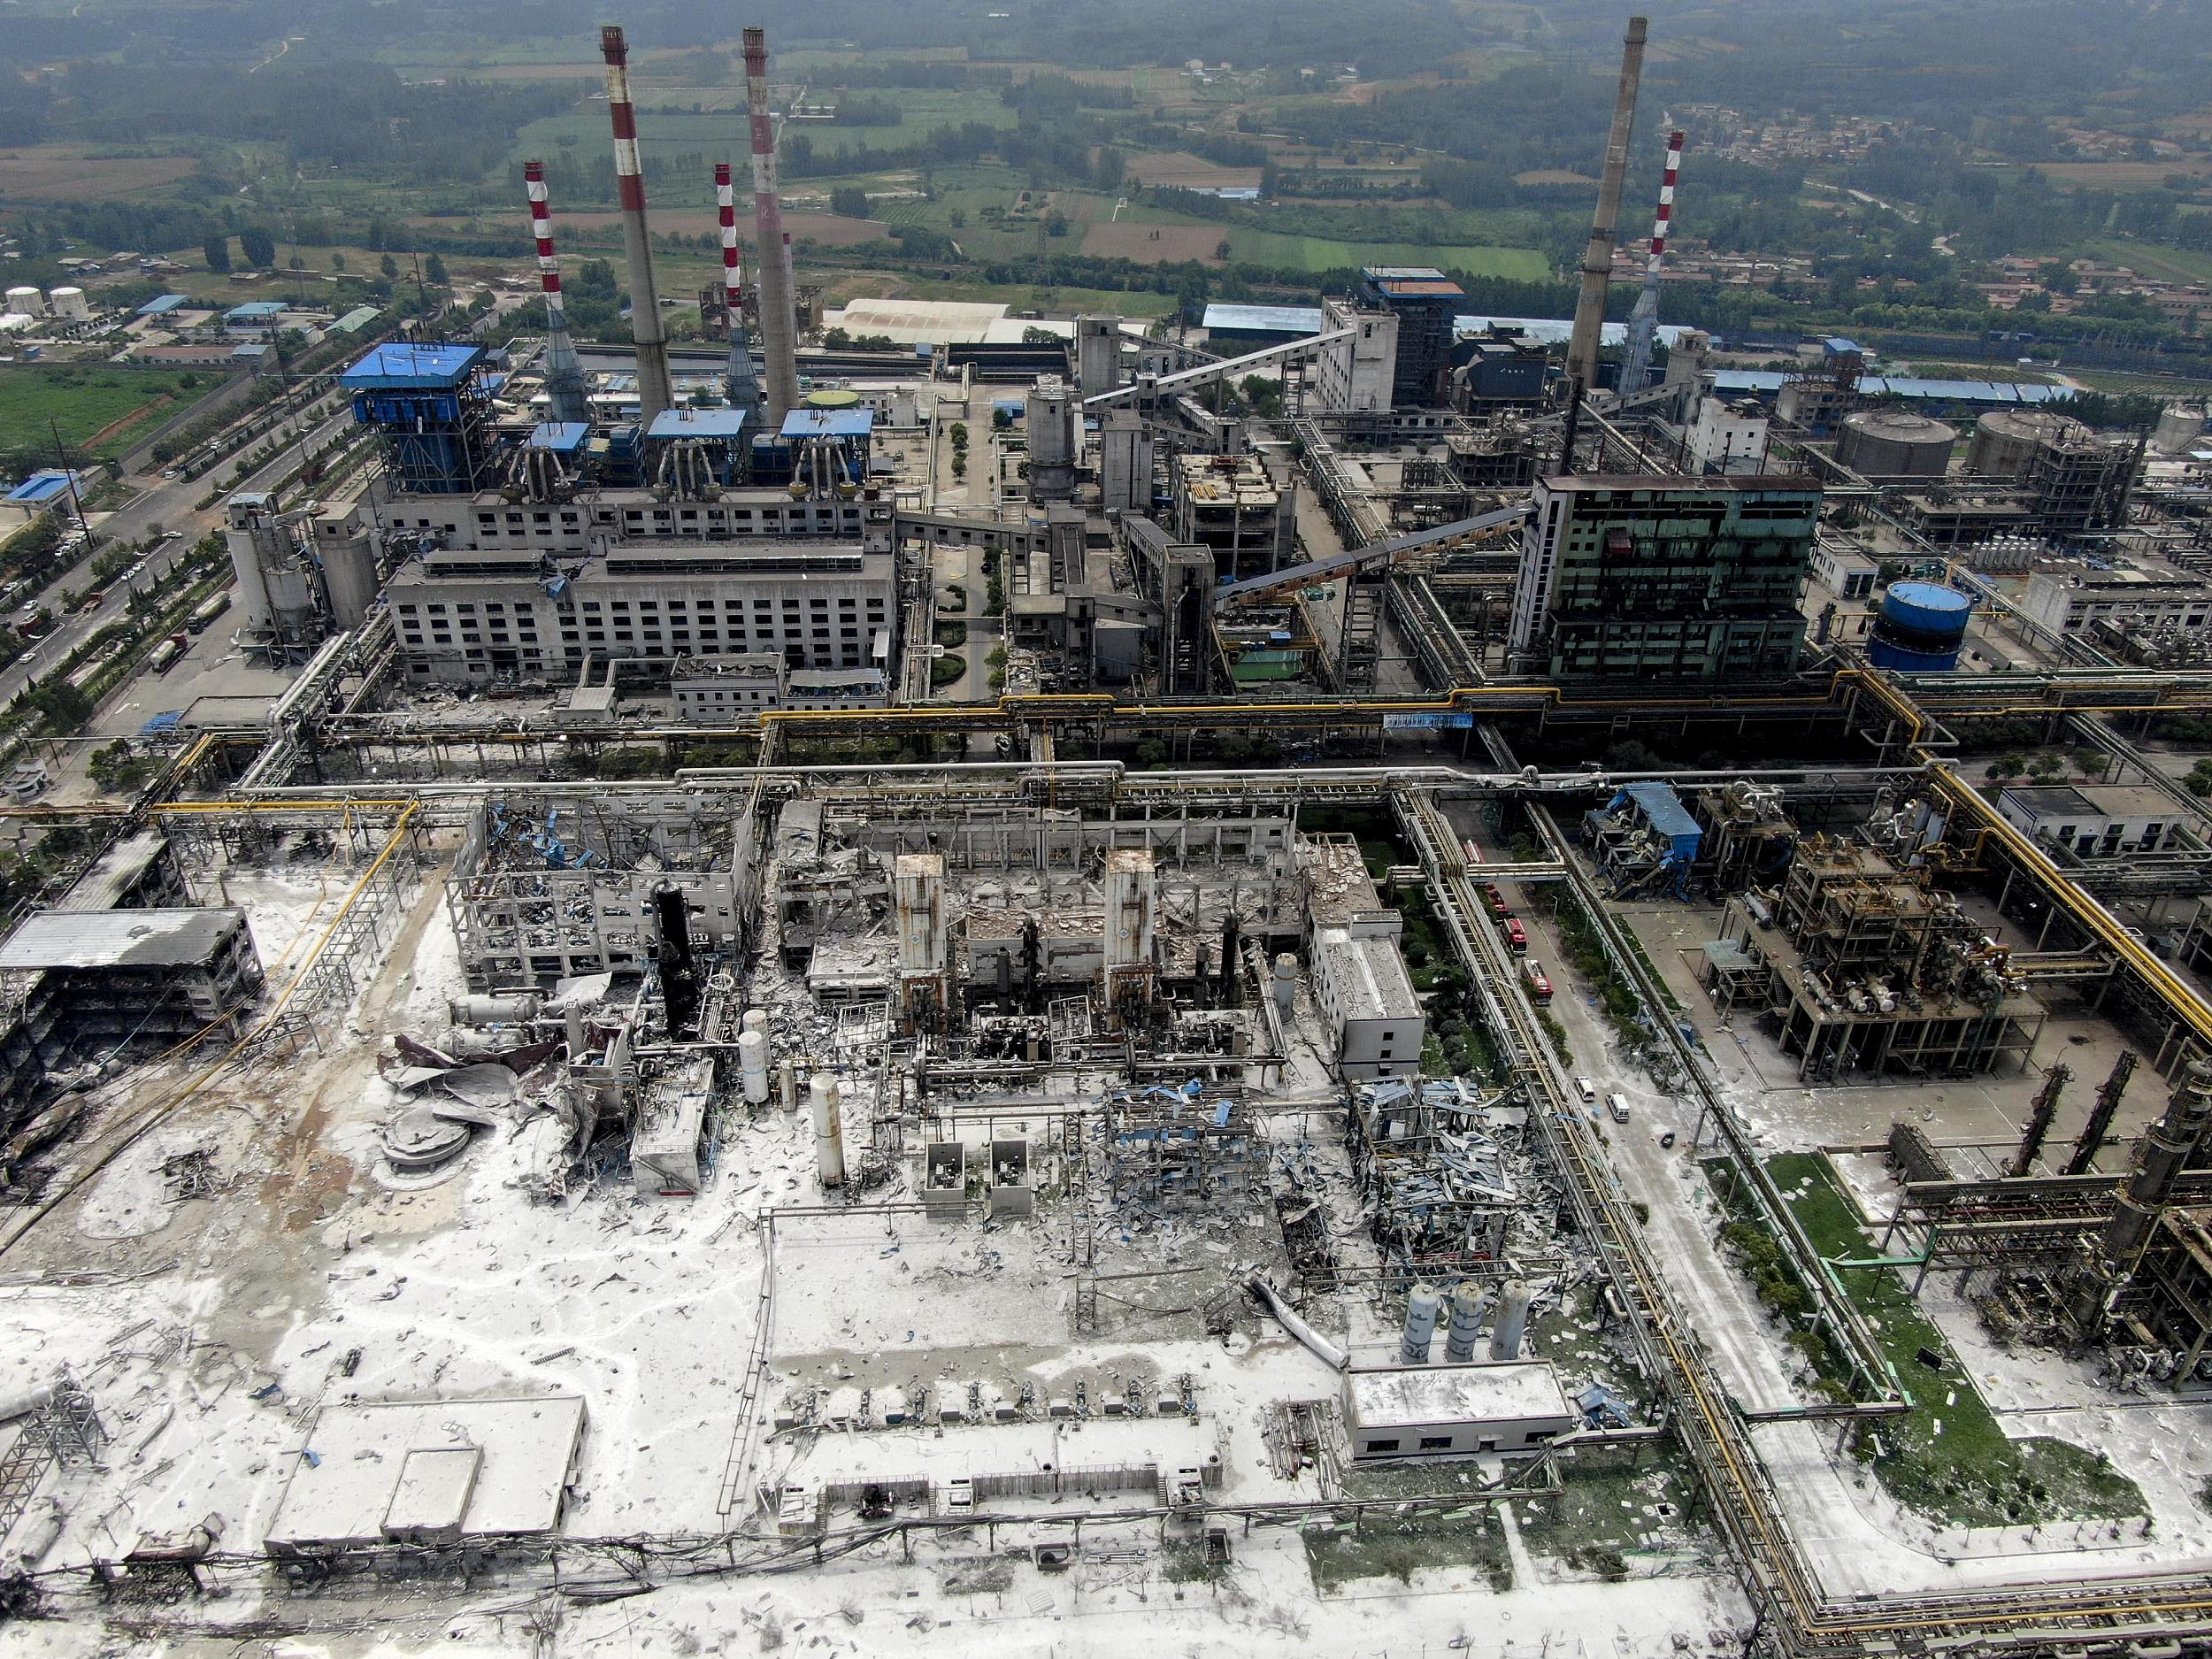 The Henan Coal Gas Group's gas factory is seen in Yima, Central China's Henan province on July 20. Photo: VCG